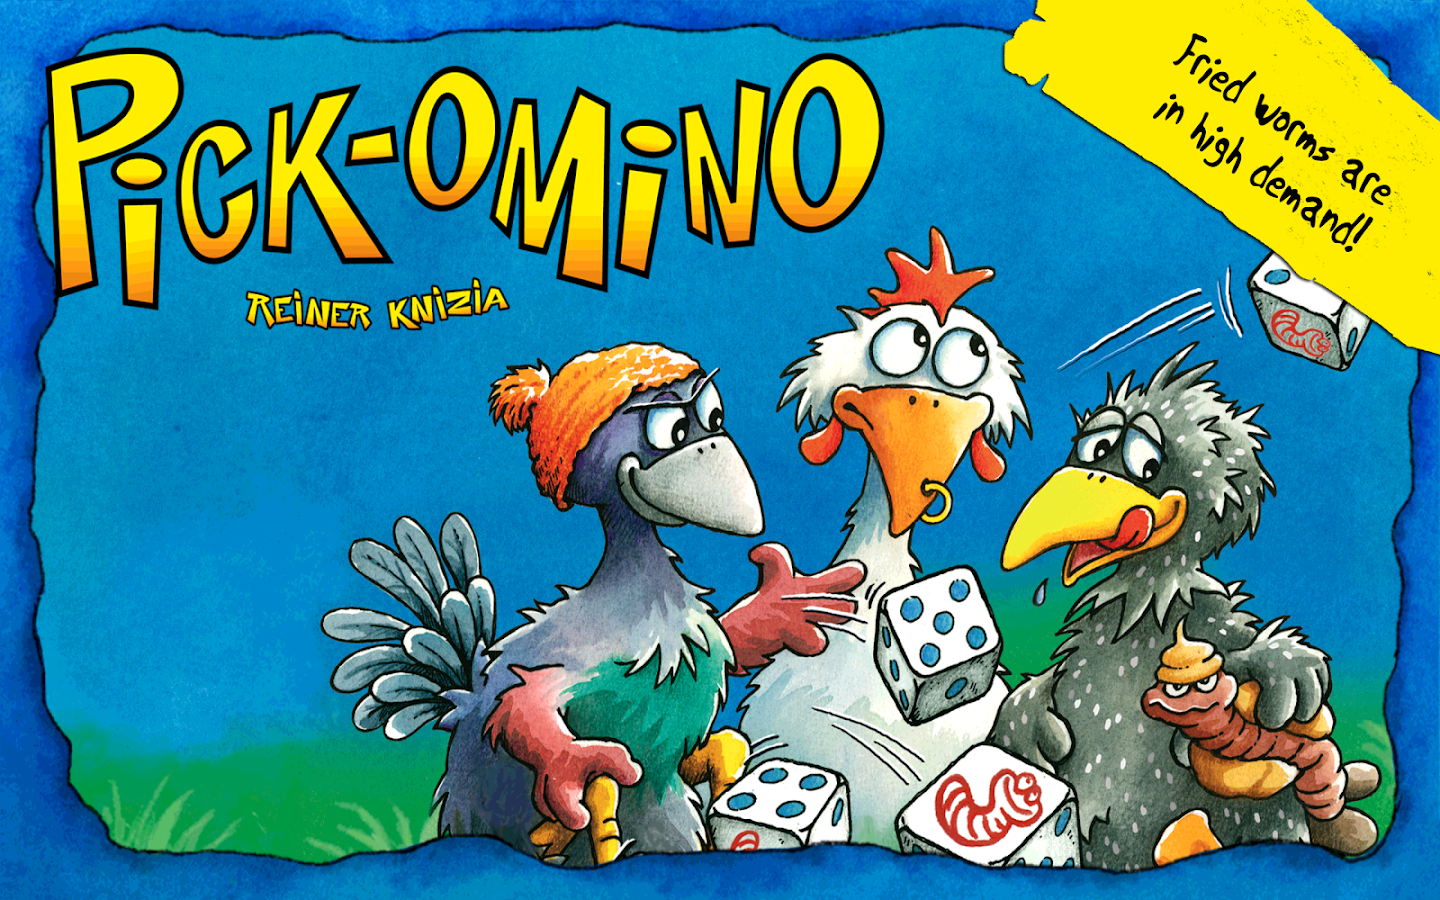 Pickomino by Reiner Knizia Screenshot 10